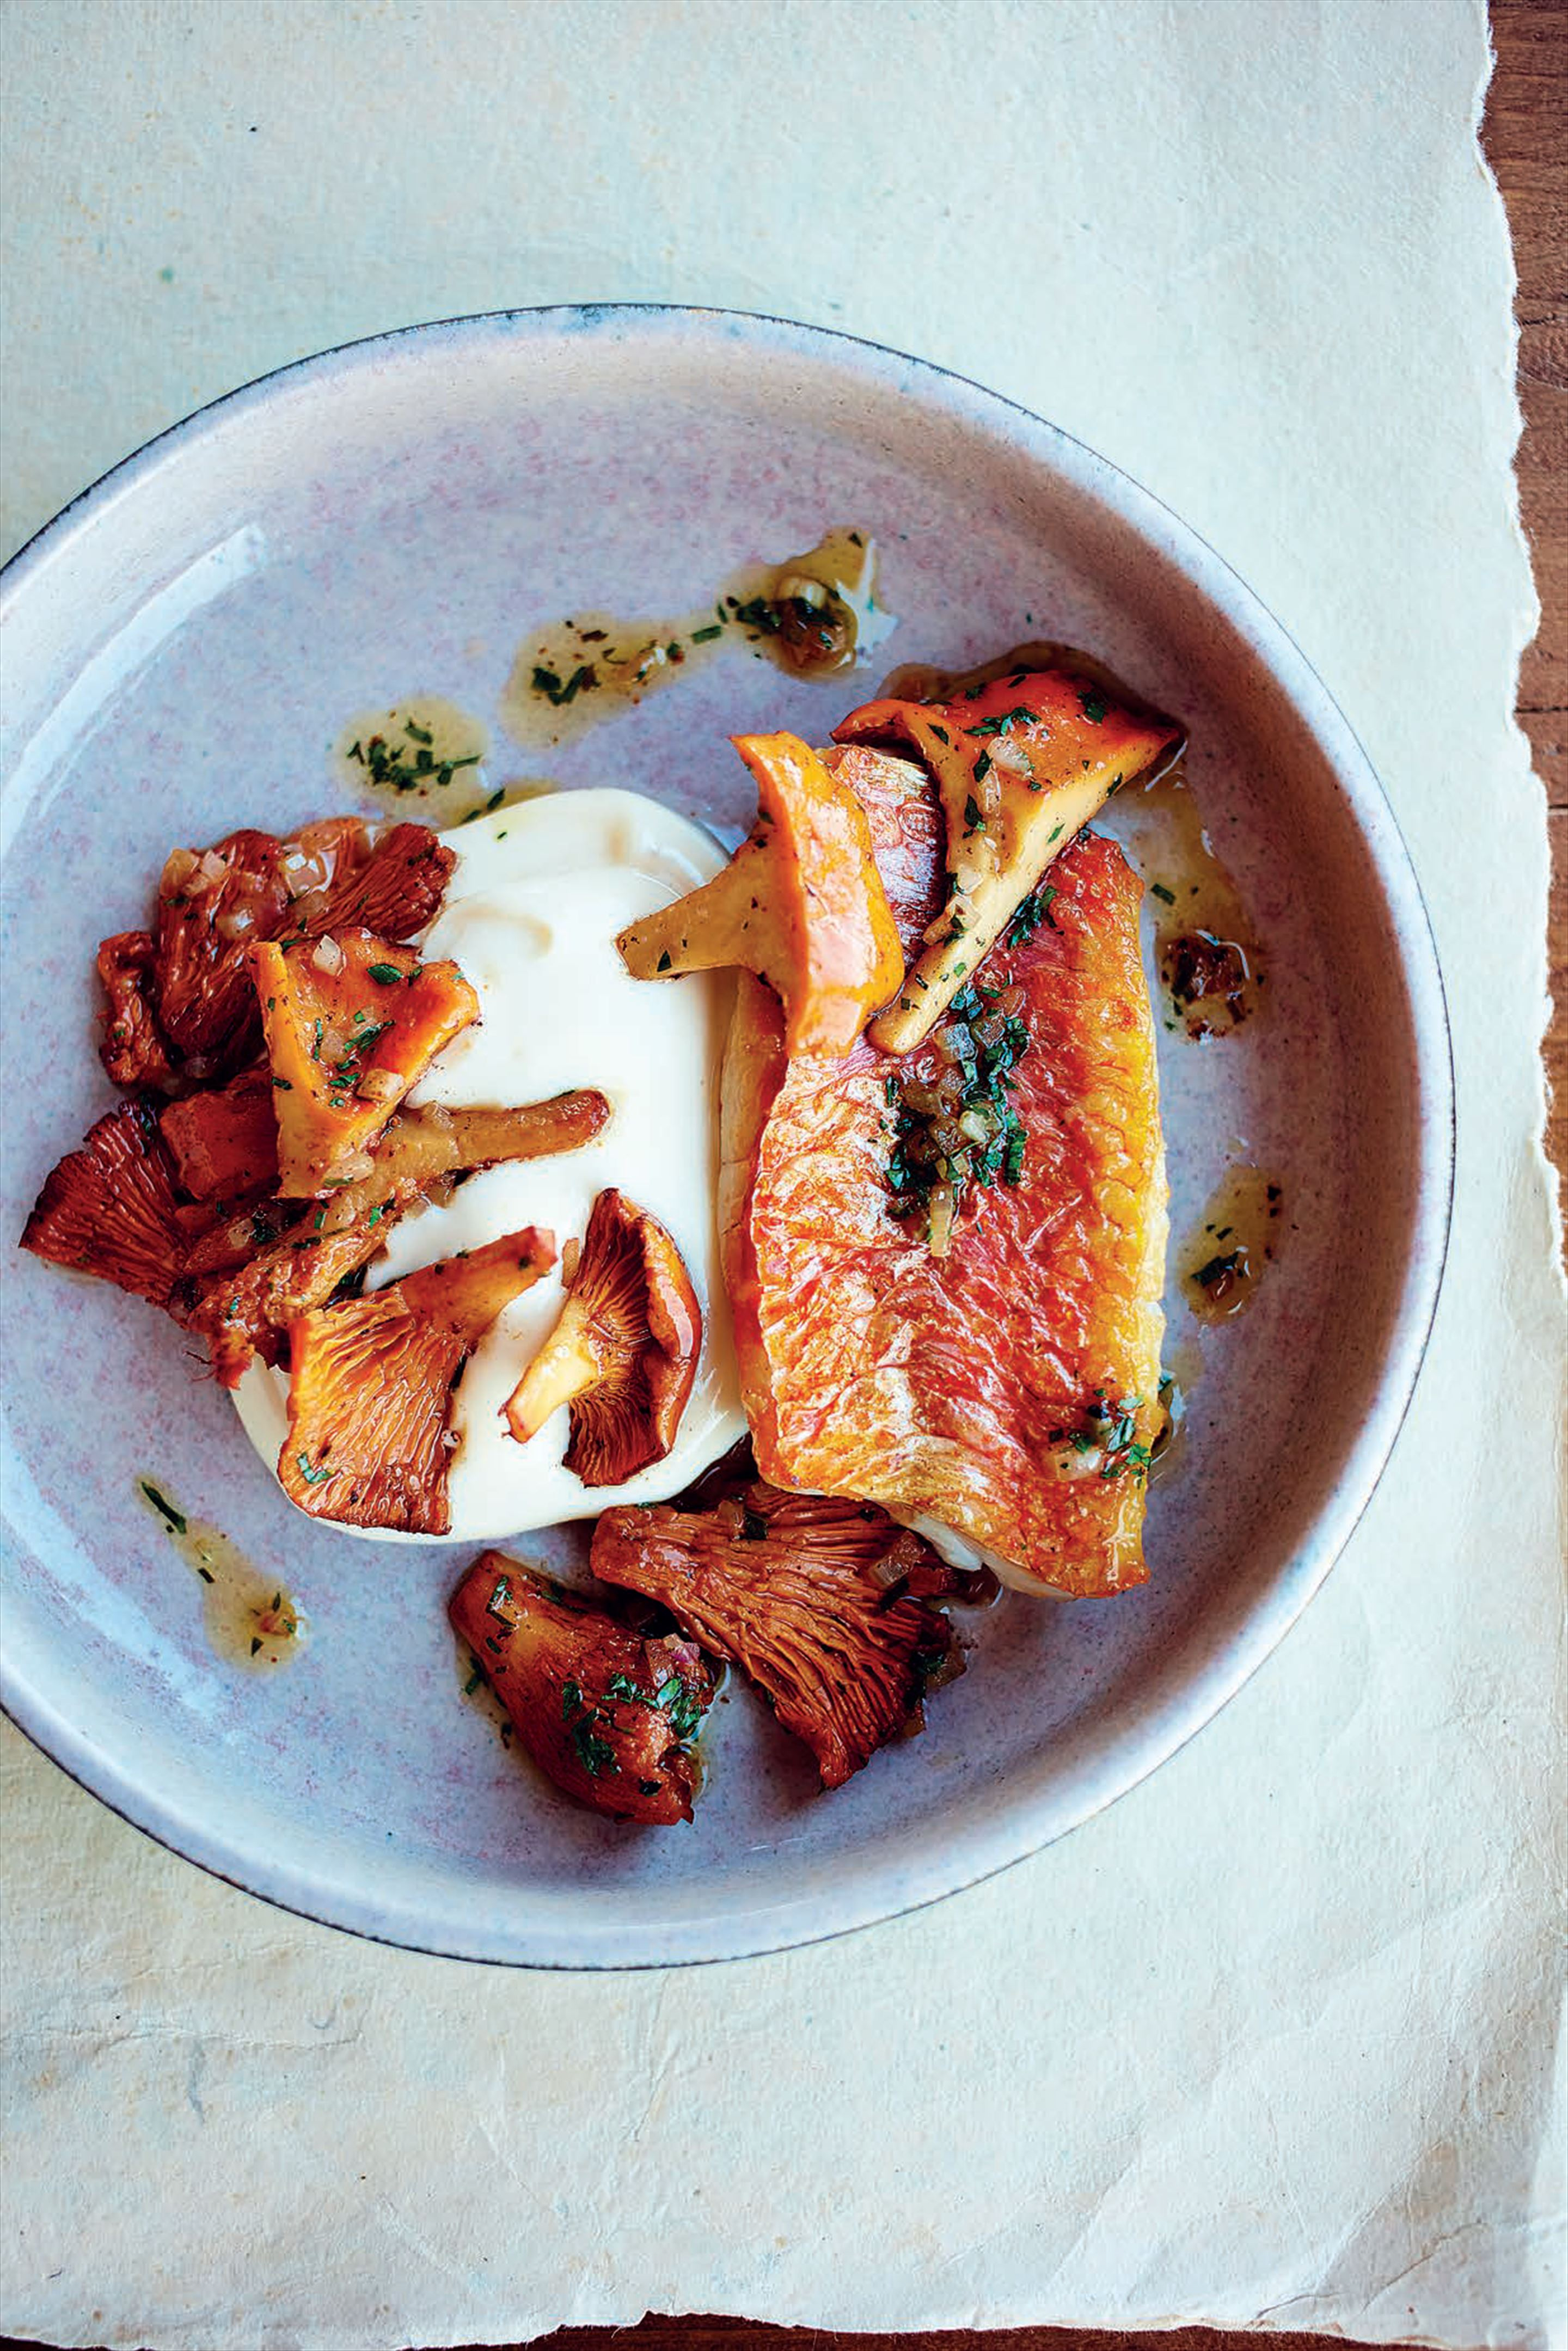 Red mullet with girolles and roasted garlic aïoli